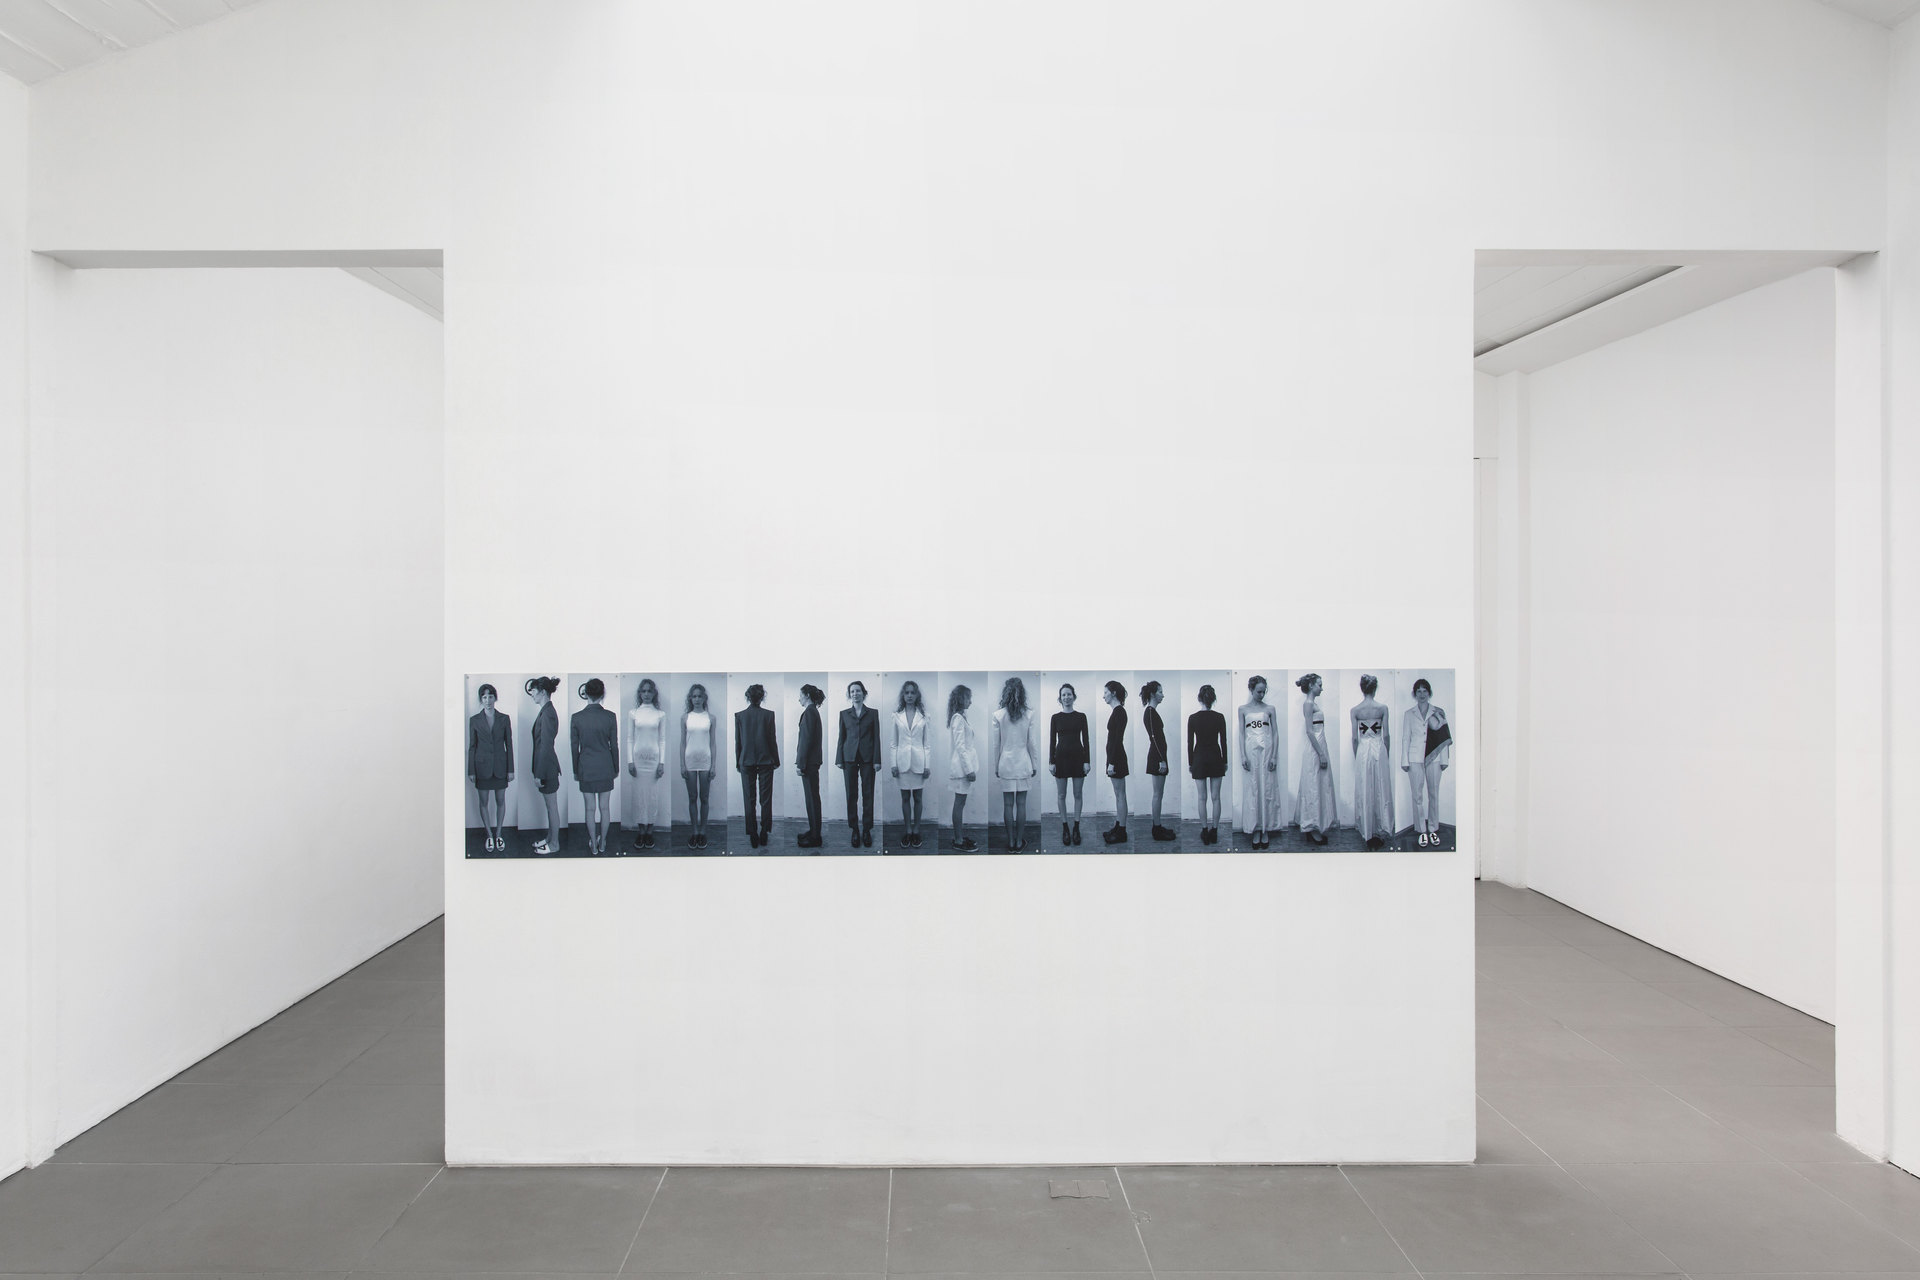 Anna-Sophie Berger, A Failed Play, installation view, 2019, Cell Project Space